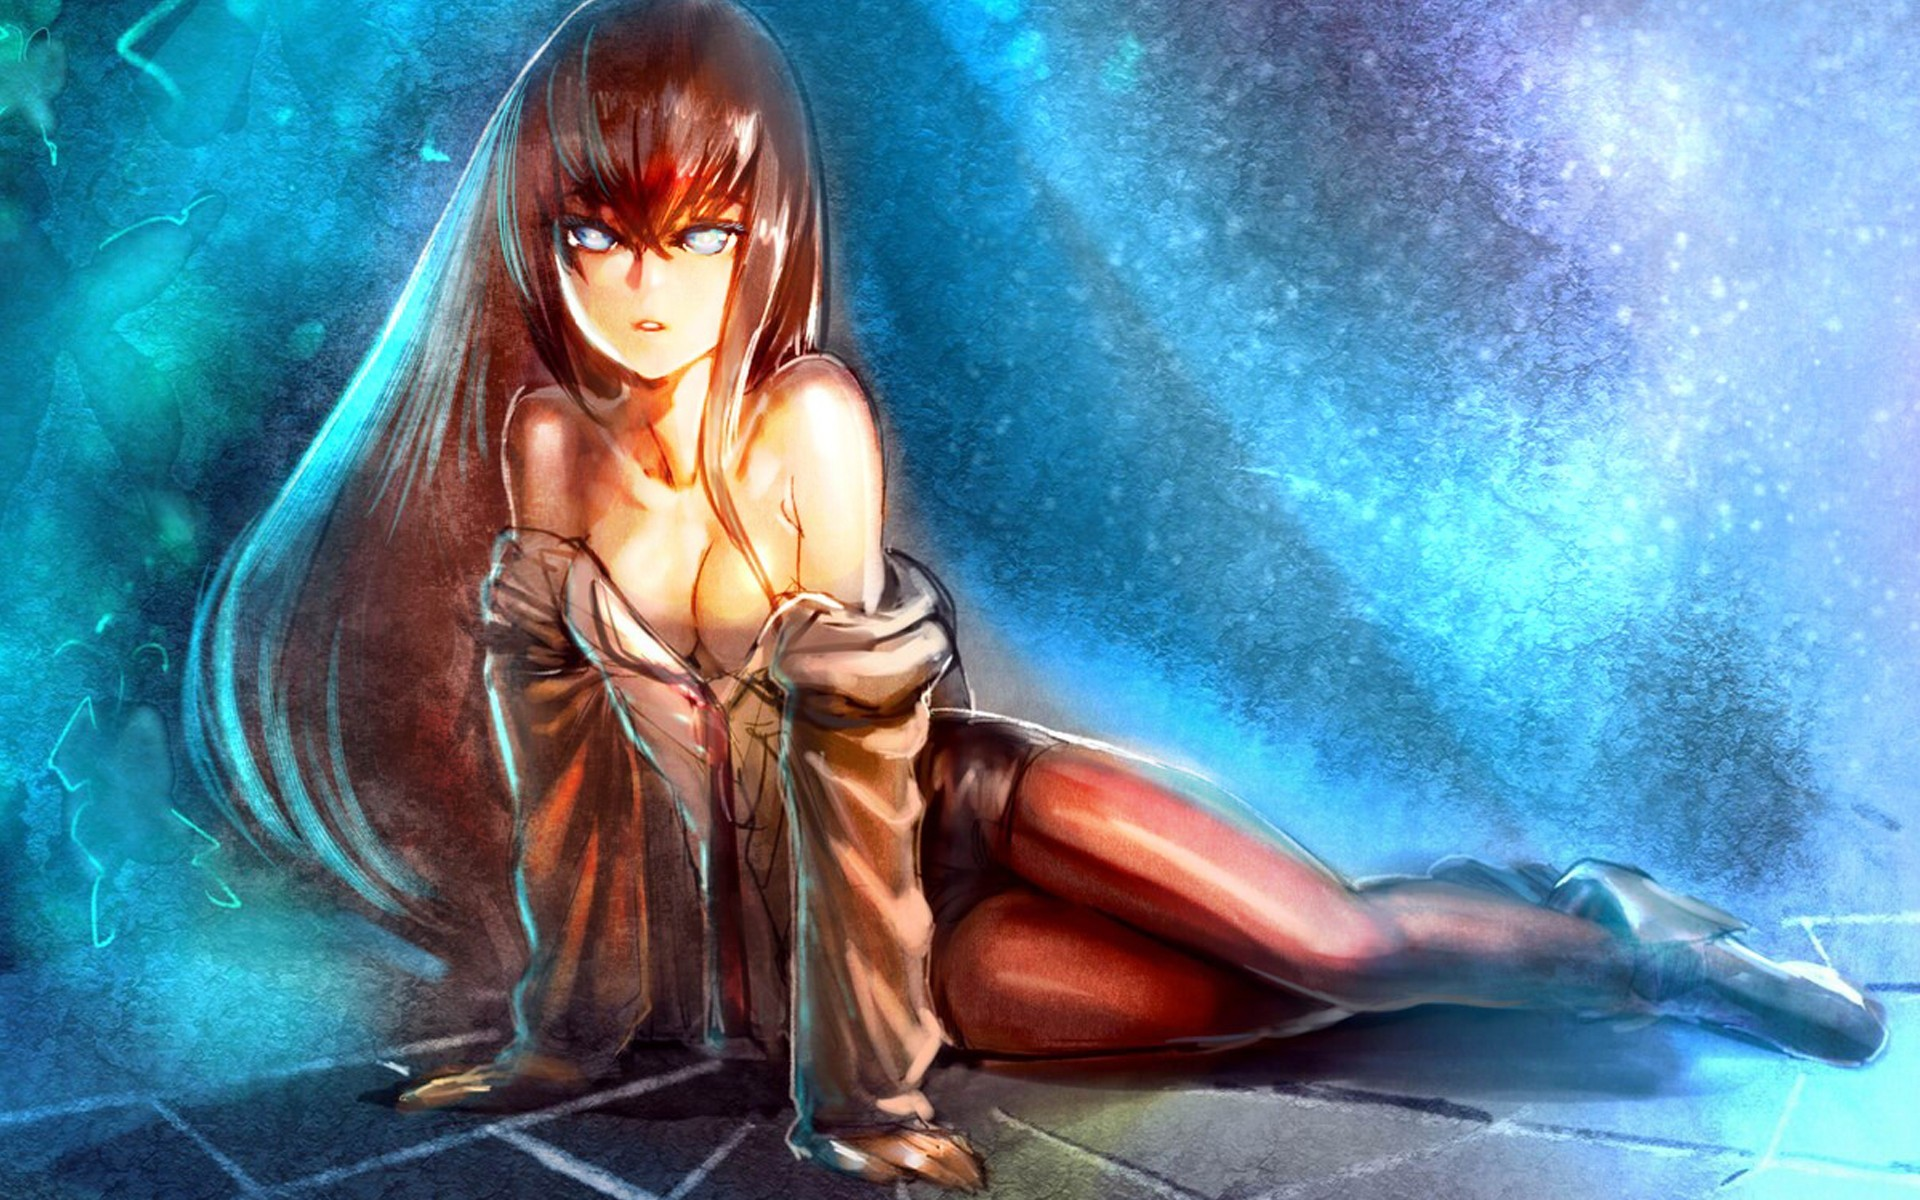 redheads cleavage artwork Anime HD Wallpaper